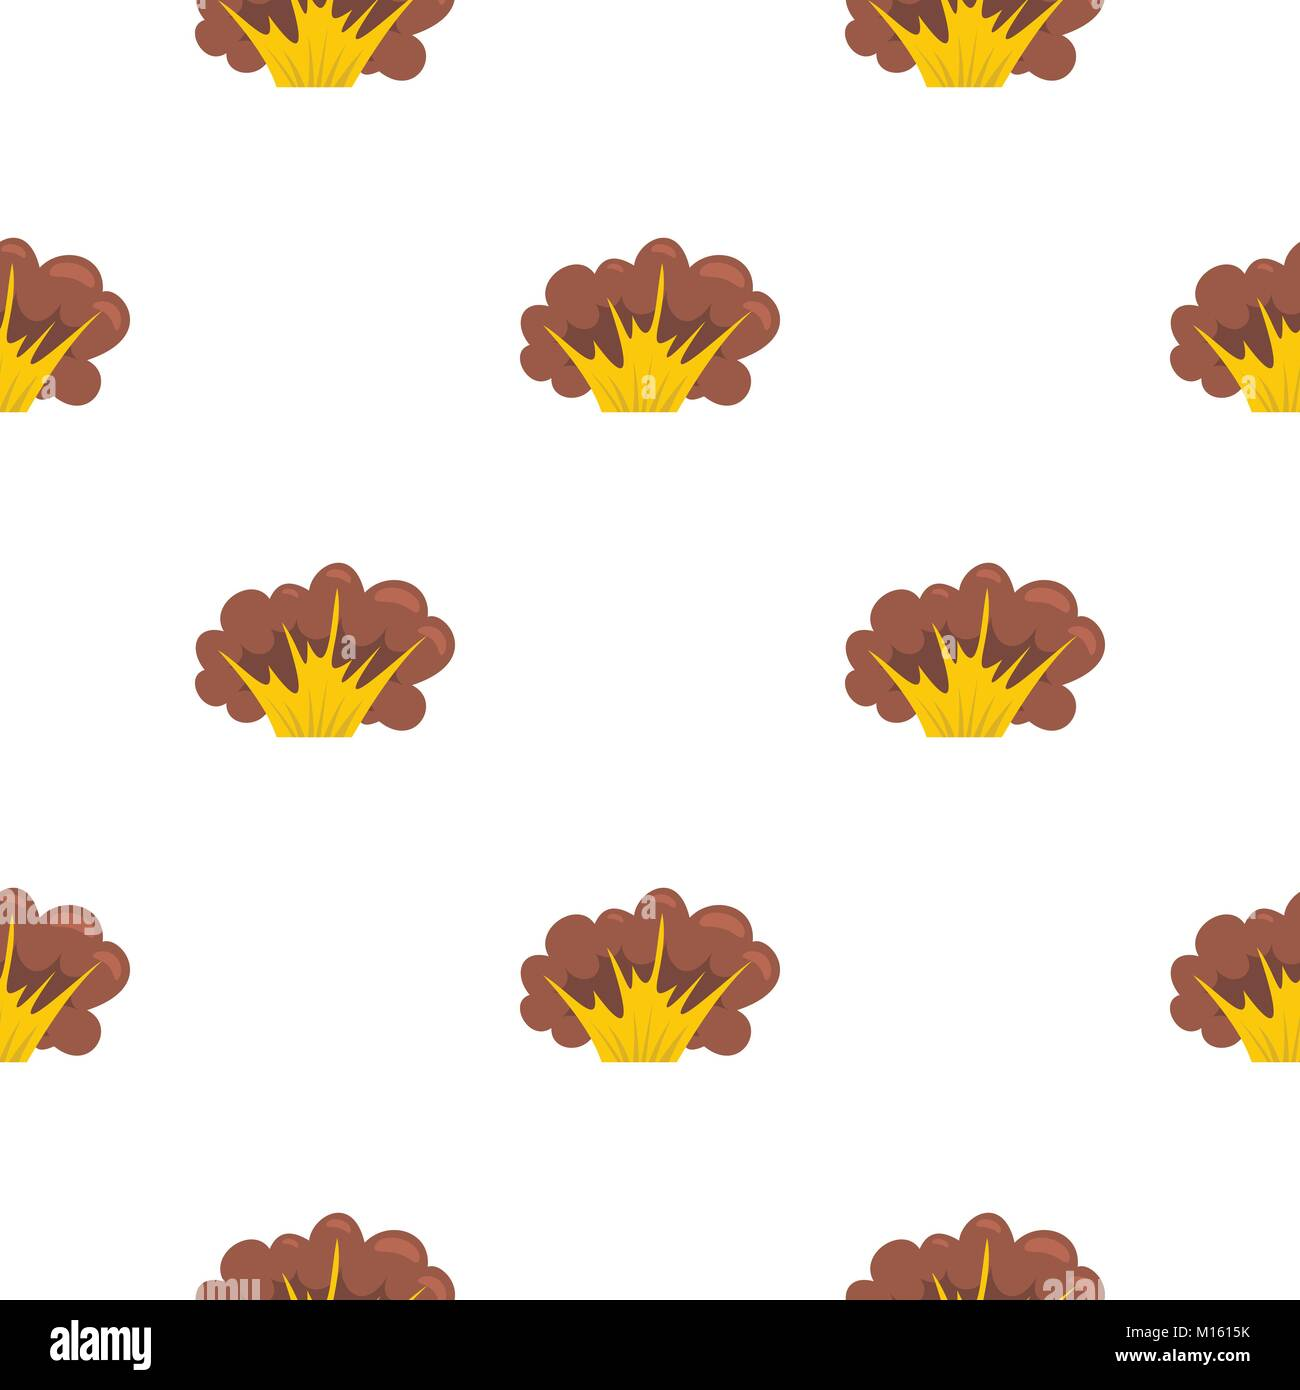 High powered explosion pattern seamless - Stock Image